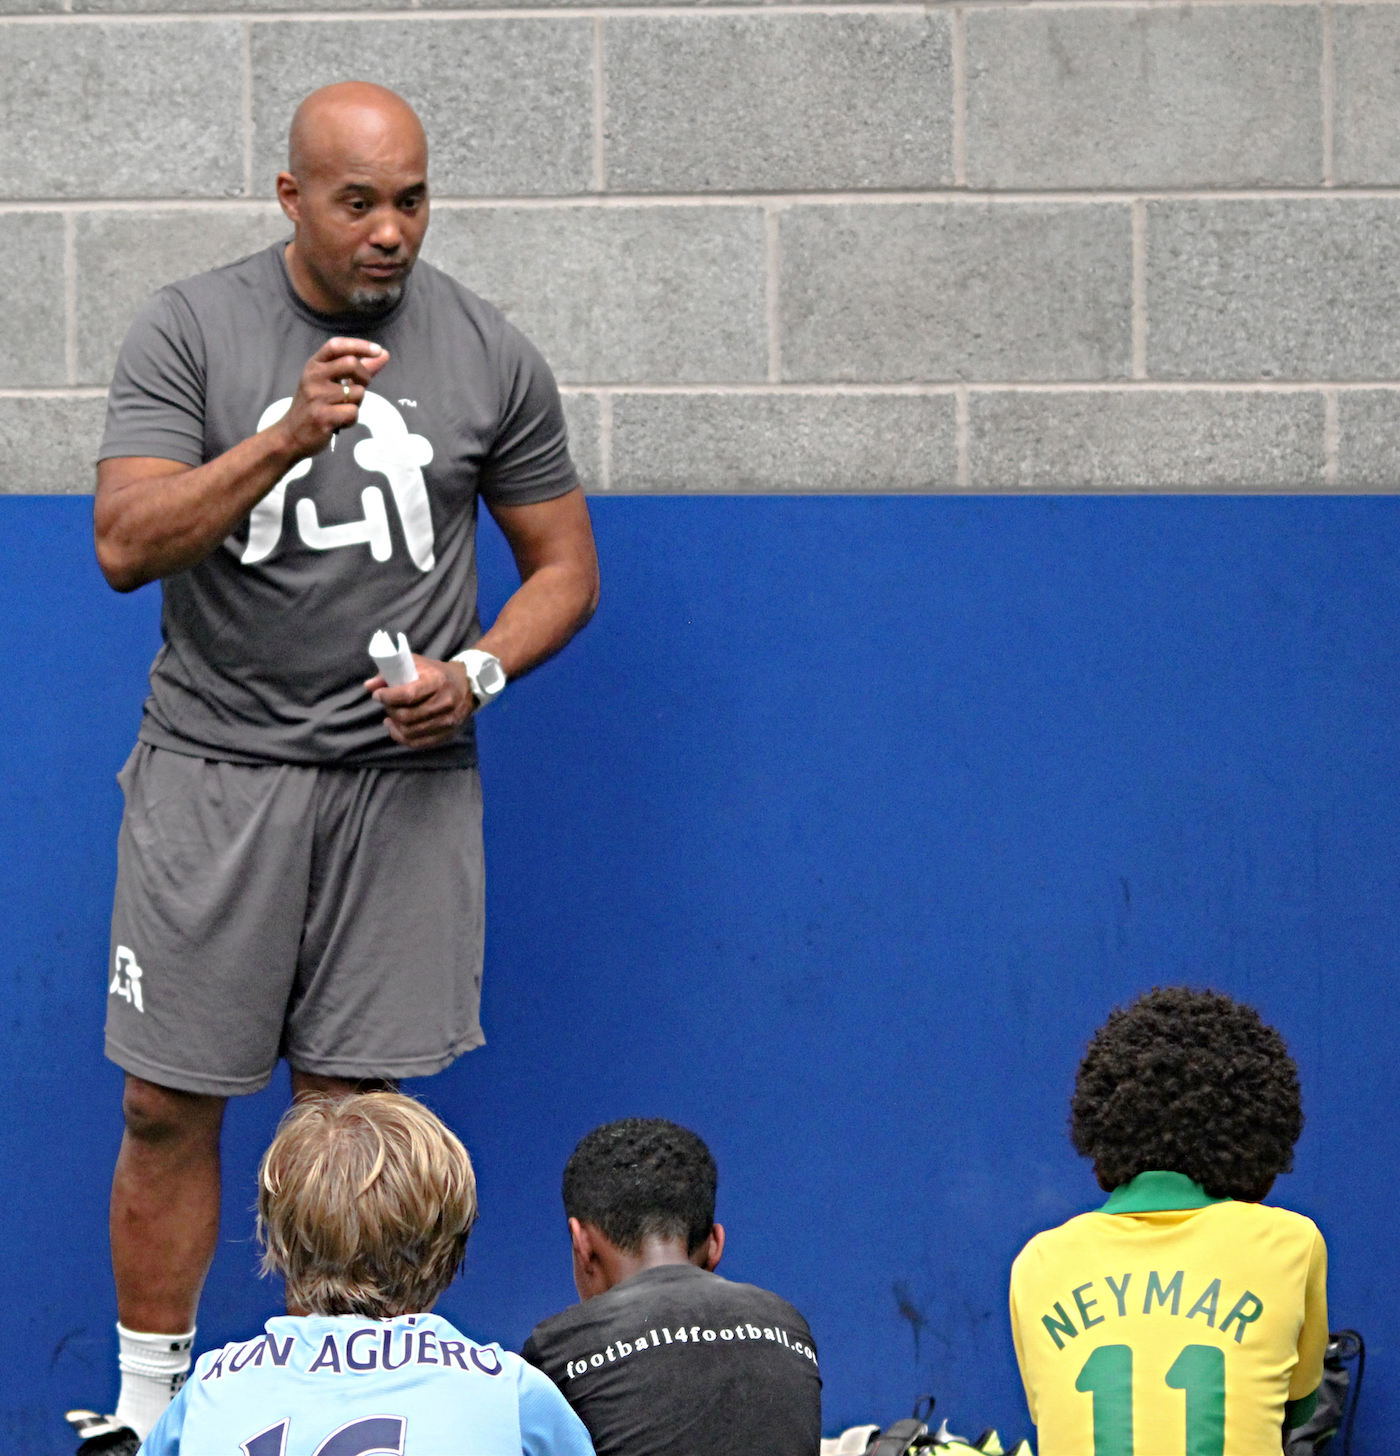 A_coach_gives_instructions_to_a_group_of_young_footballers_at_training